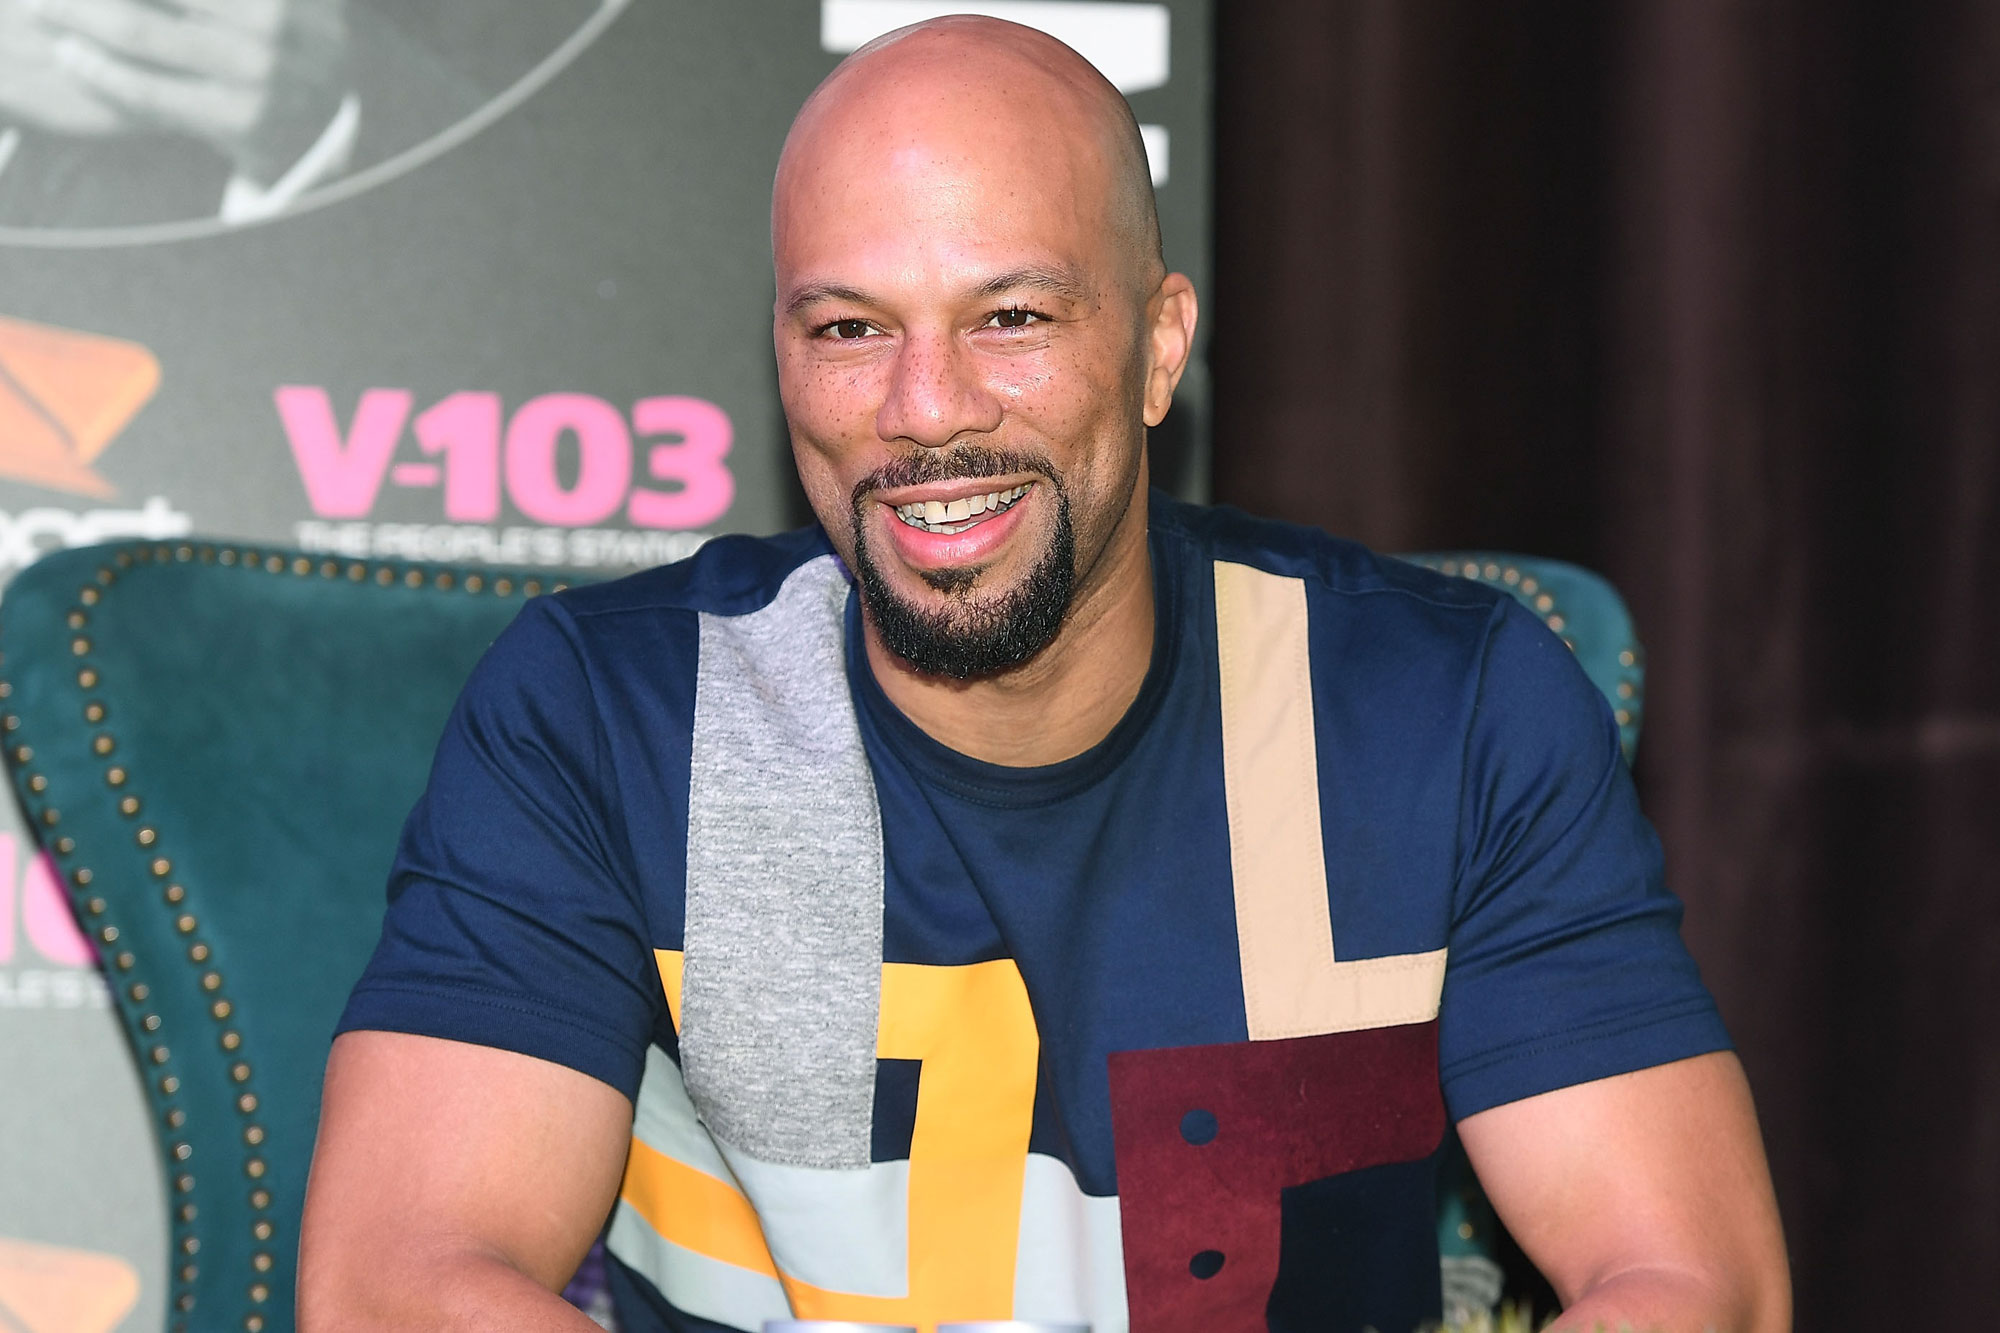 V-103 Presents A Conversation with Common